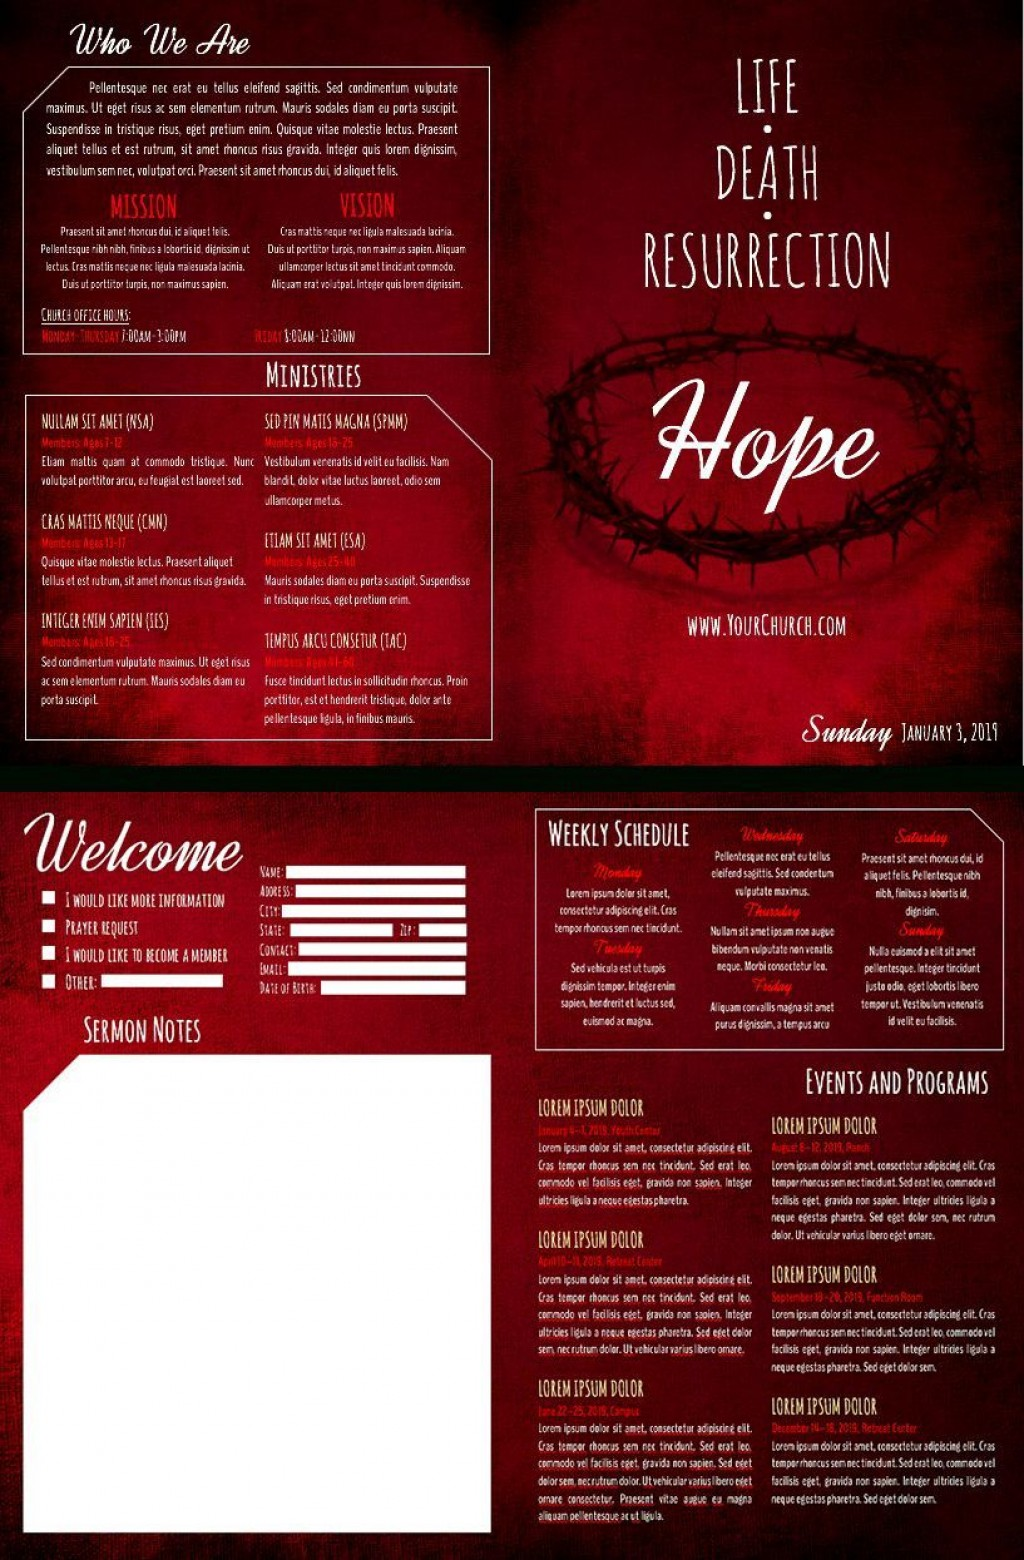 006 Magnificent Free Church Program Template Microsoft Publisher High Def Large